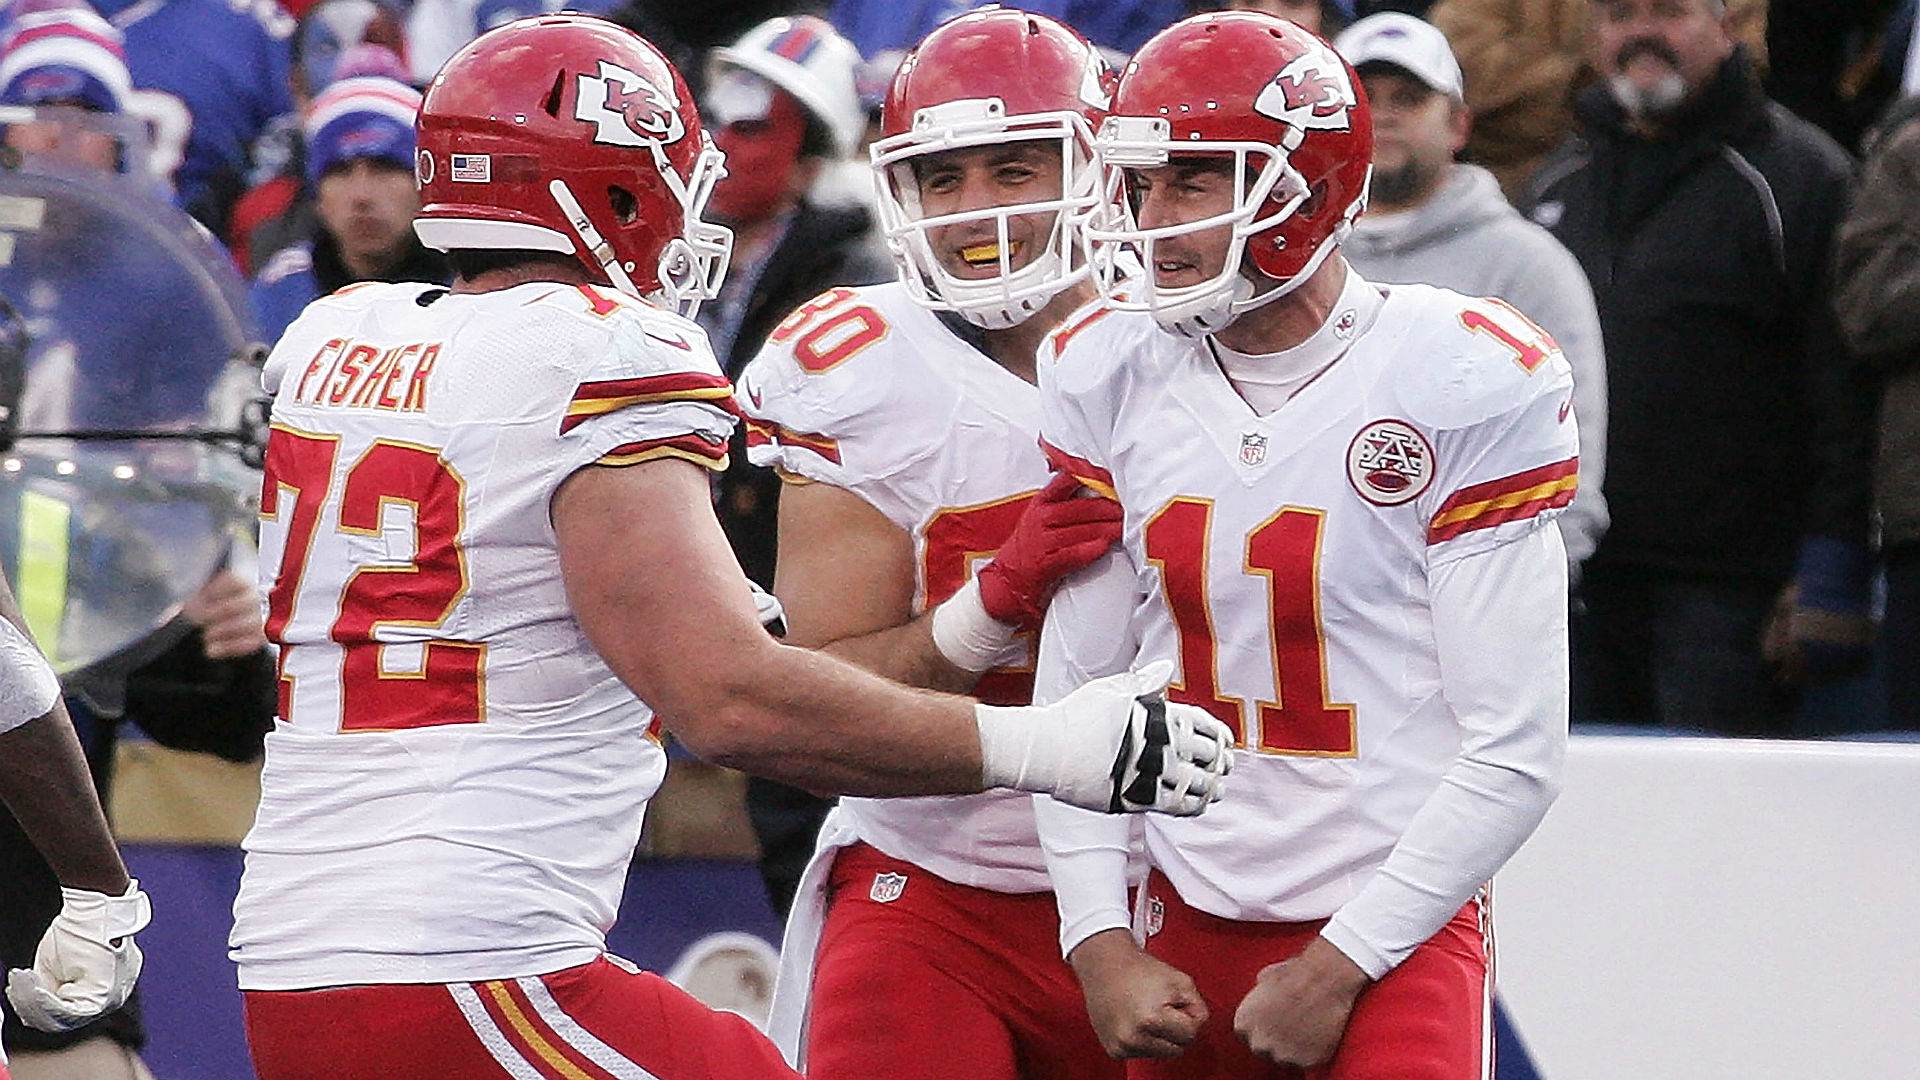 NFL Week 11 opening line report – Chiefs favored over Seahawks